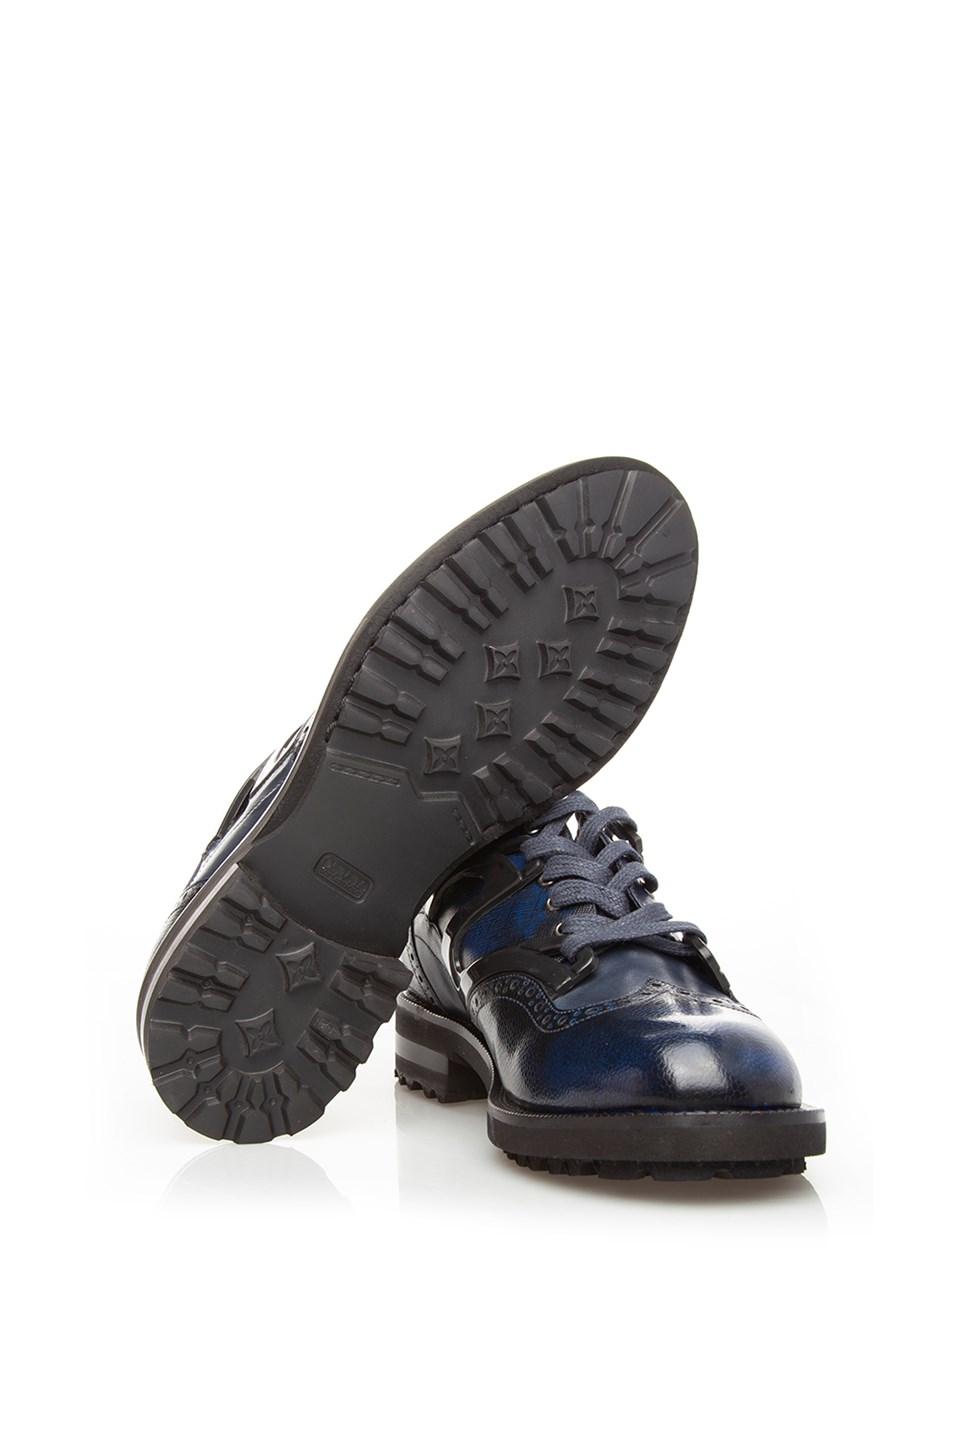 frankie shoes on sale